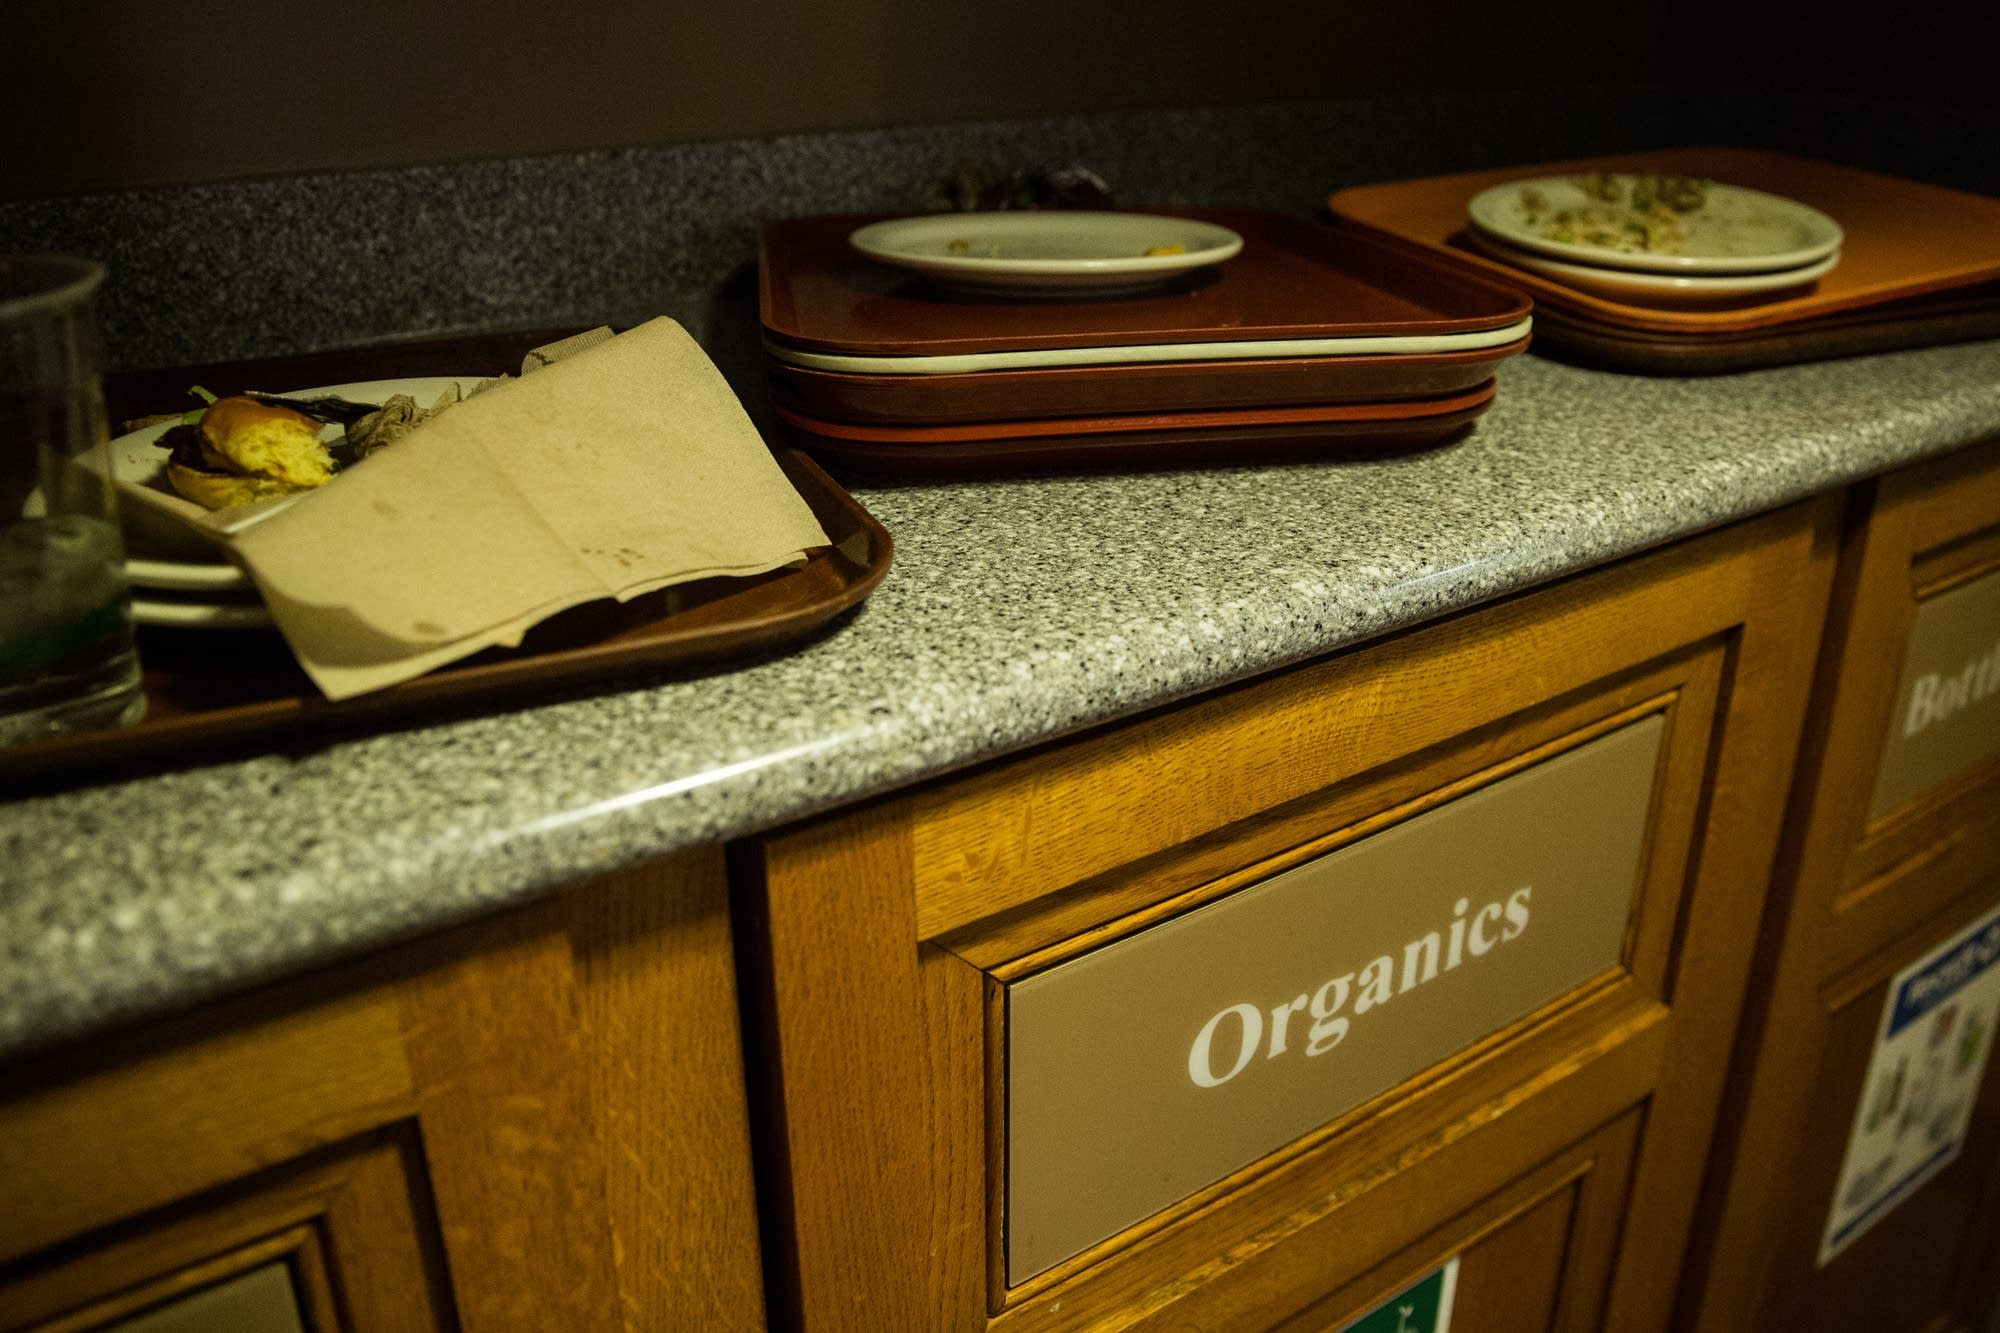 Organic bins inside the Rathskeller Cafe.